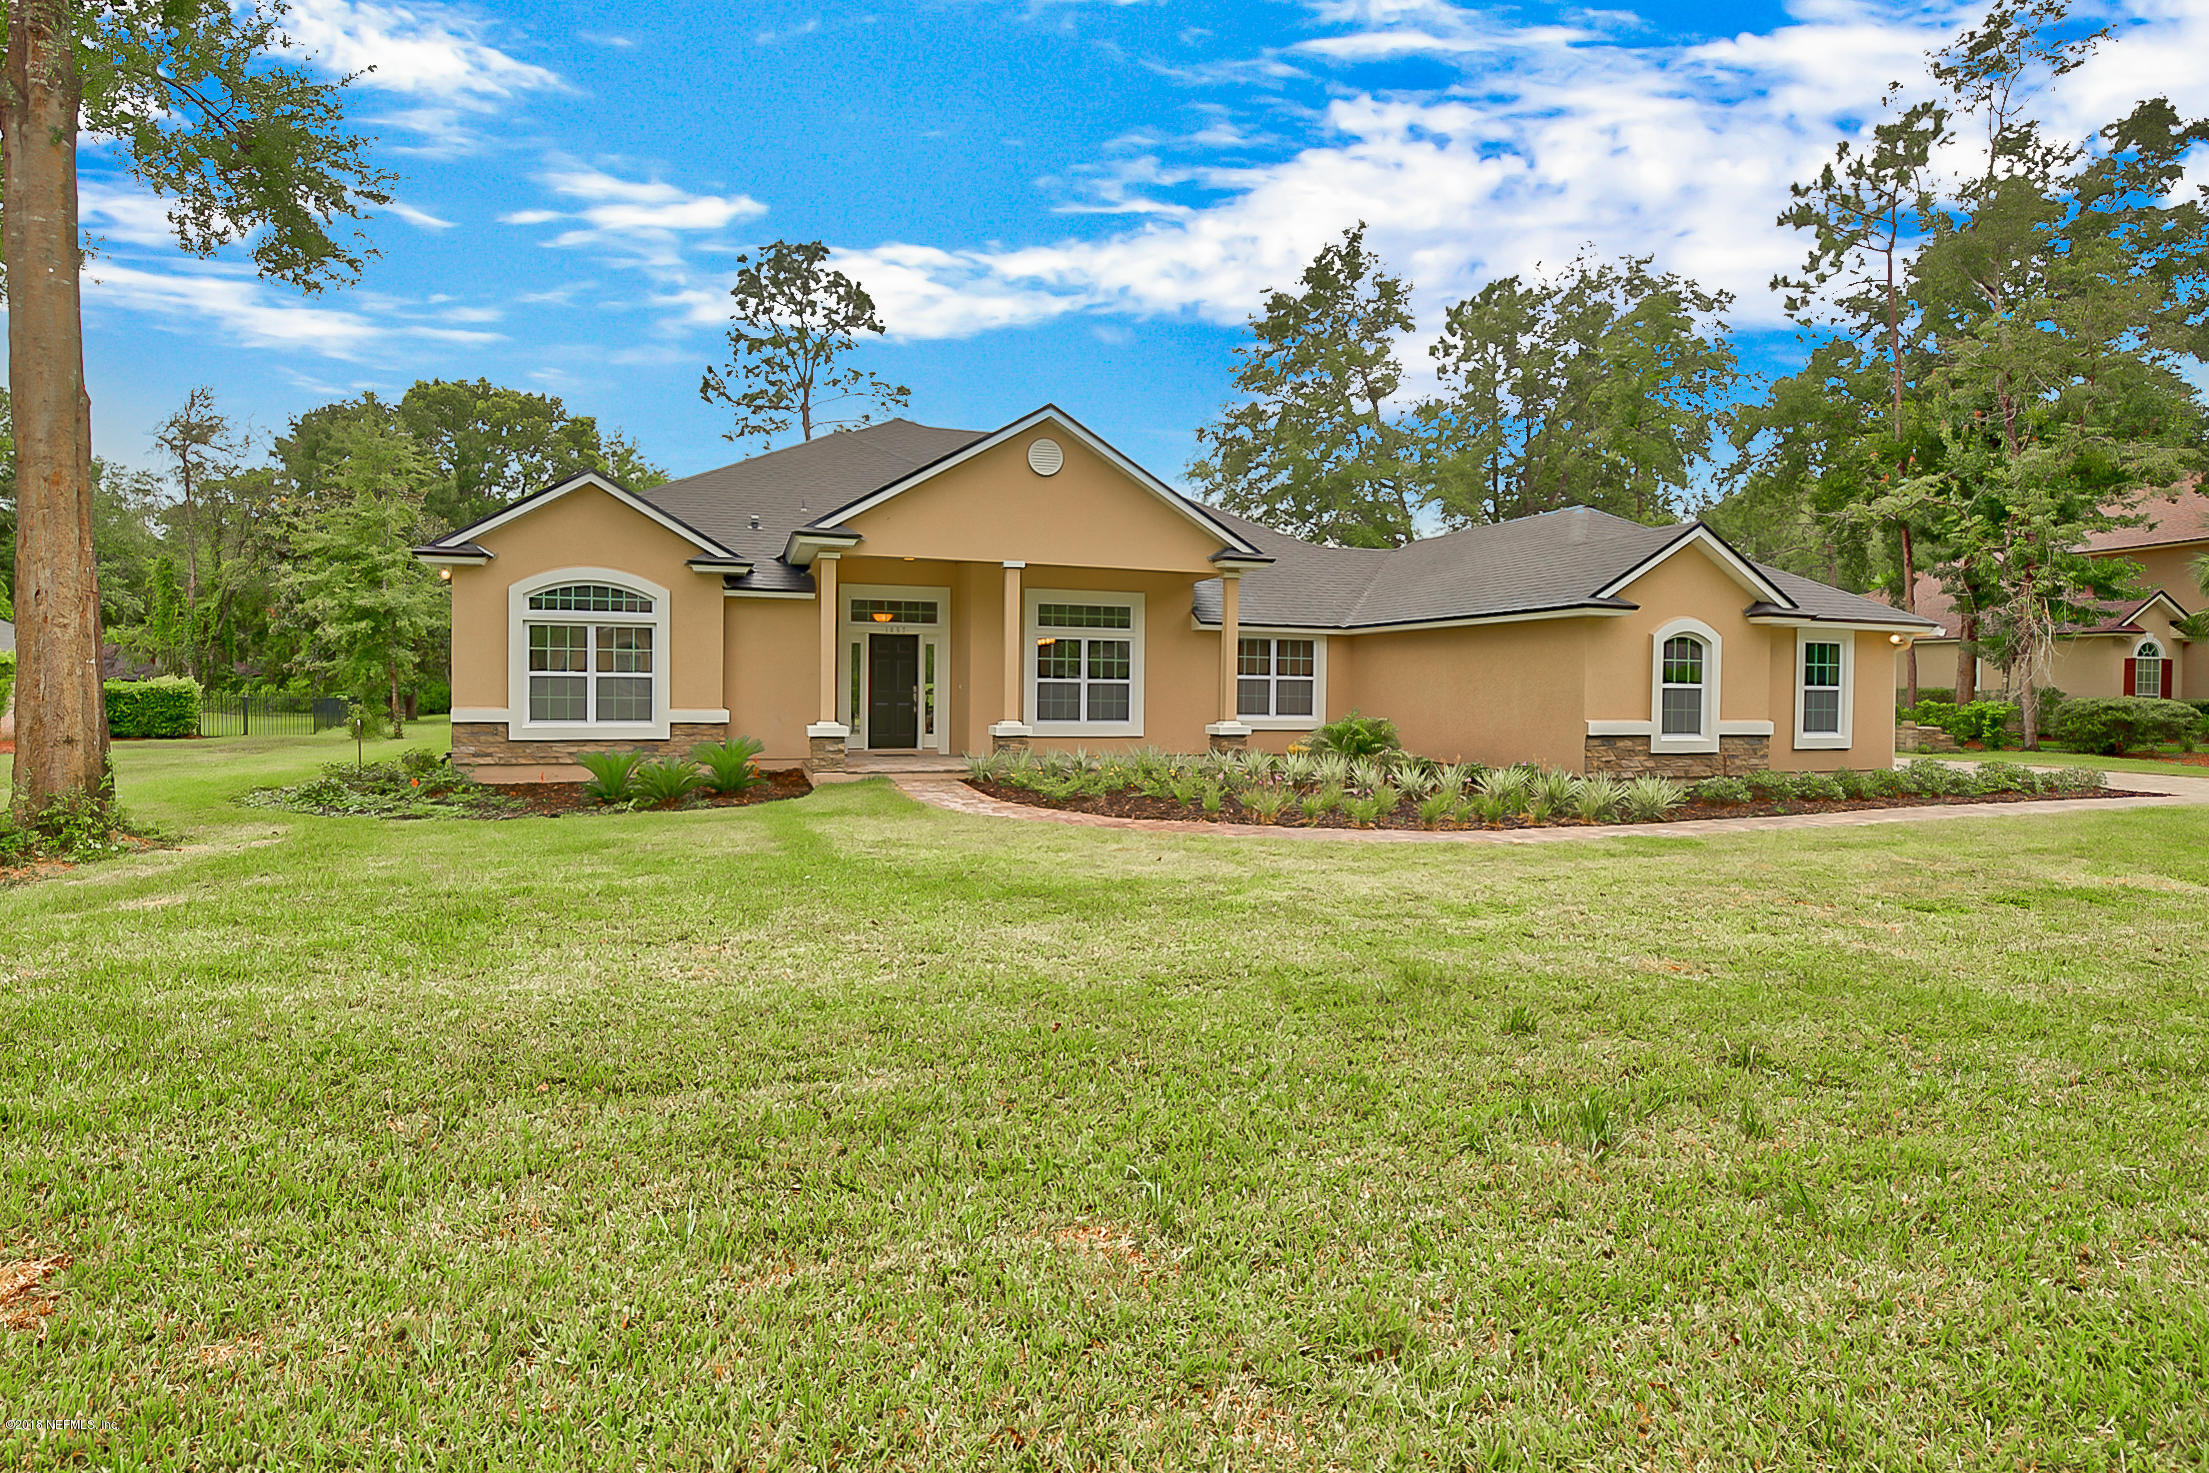 1857 MEDINAH, GREEN COVE SPRINGS, FLORIDA 32043, 4 Bedrooms Bedrooms, ,3 BathroomsBathrooms,Residential - single family,For sale,MEDINAH,948315